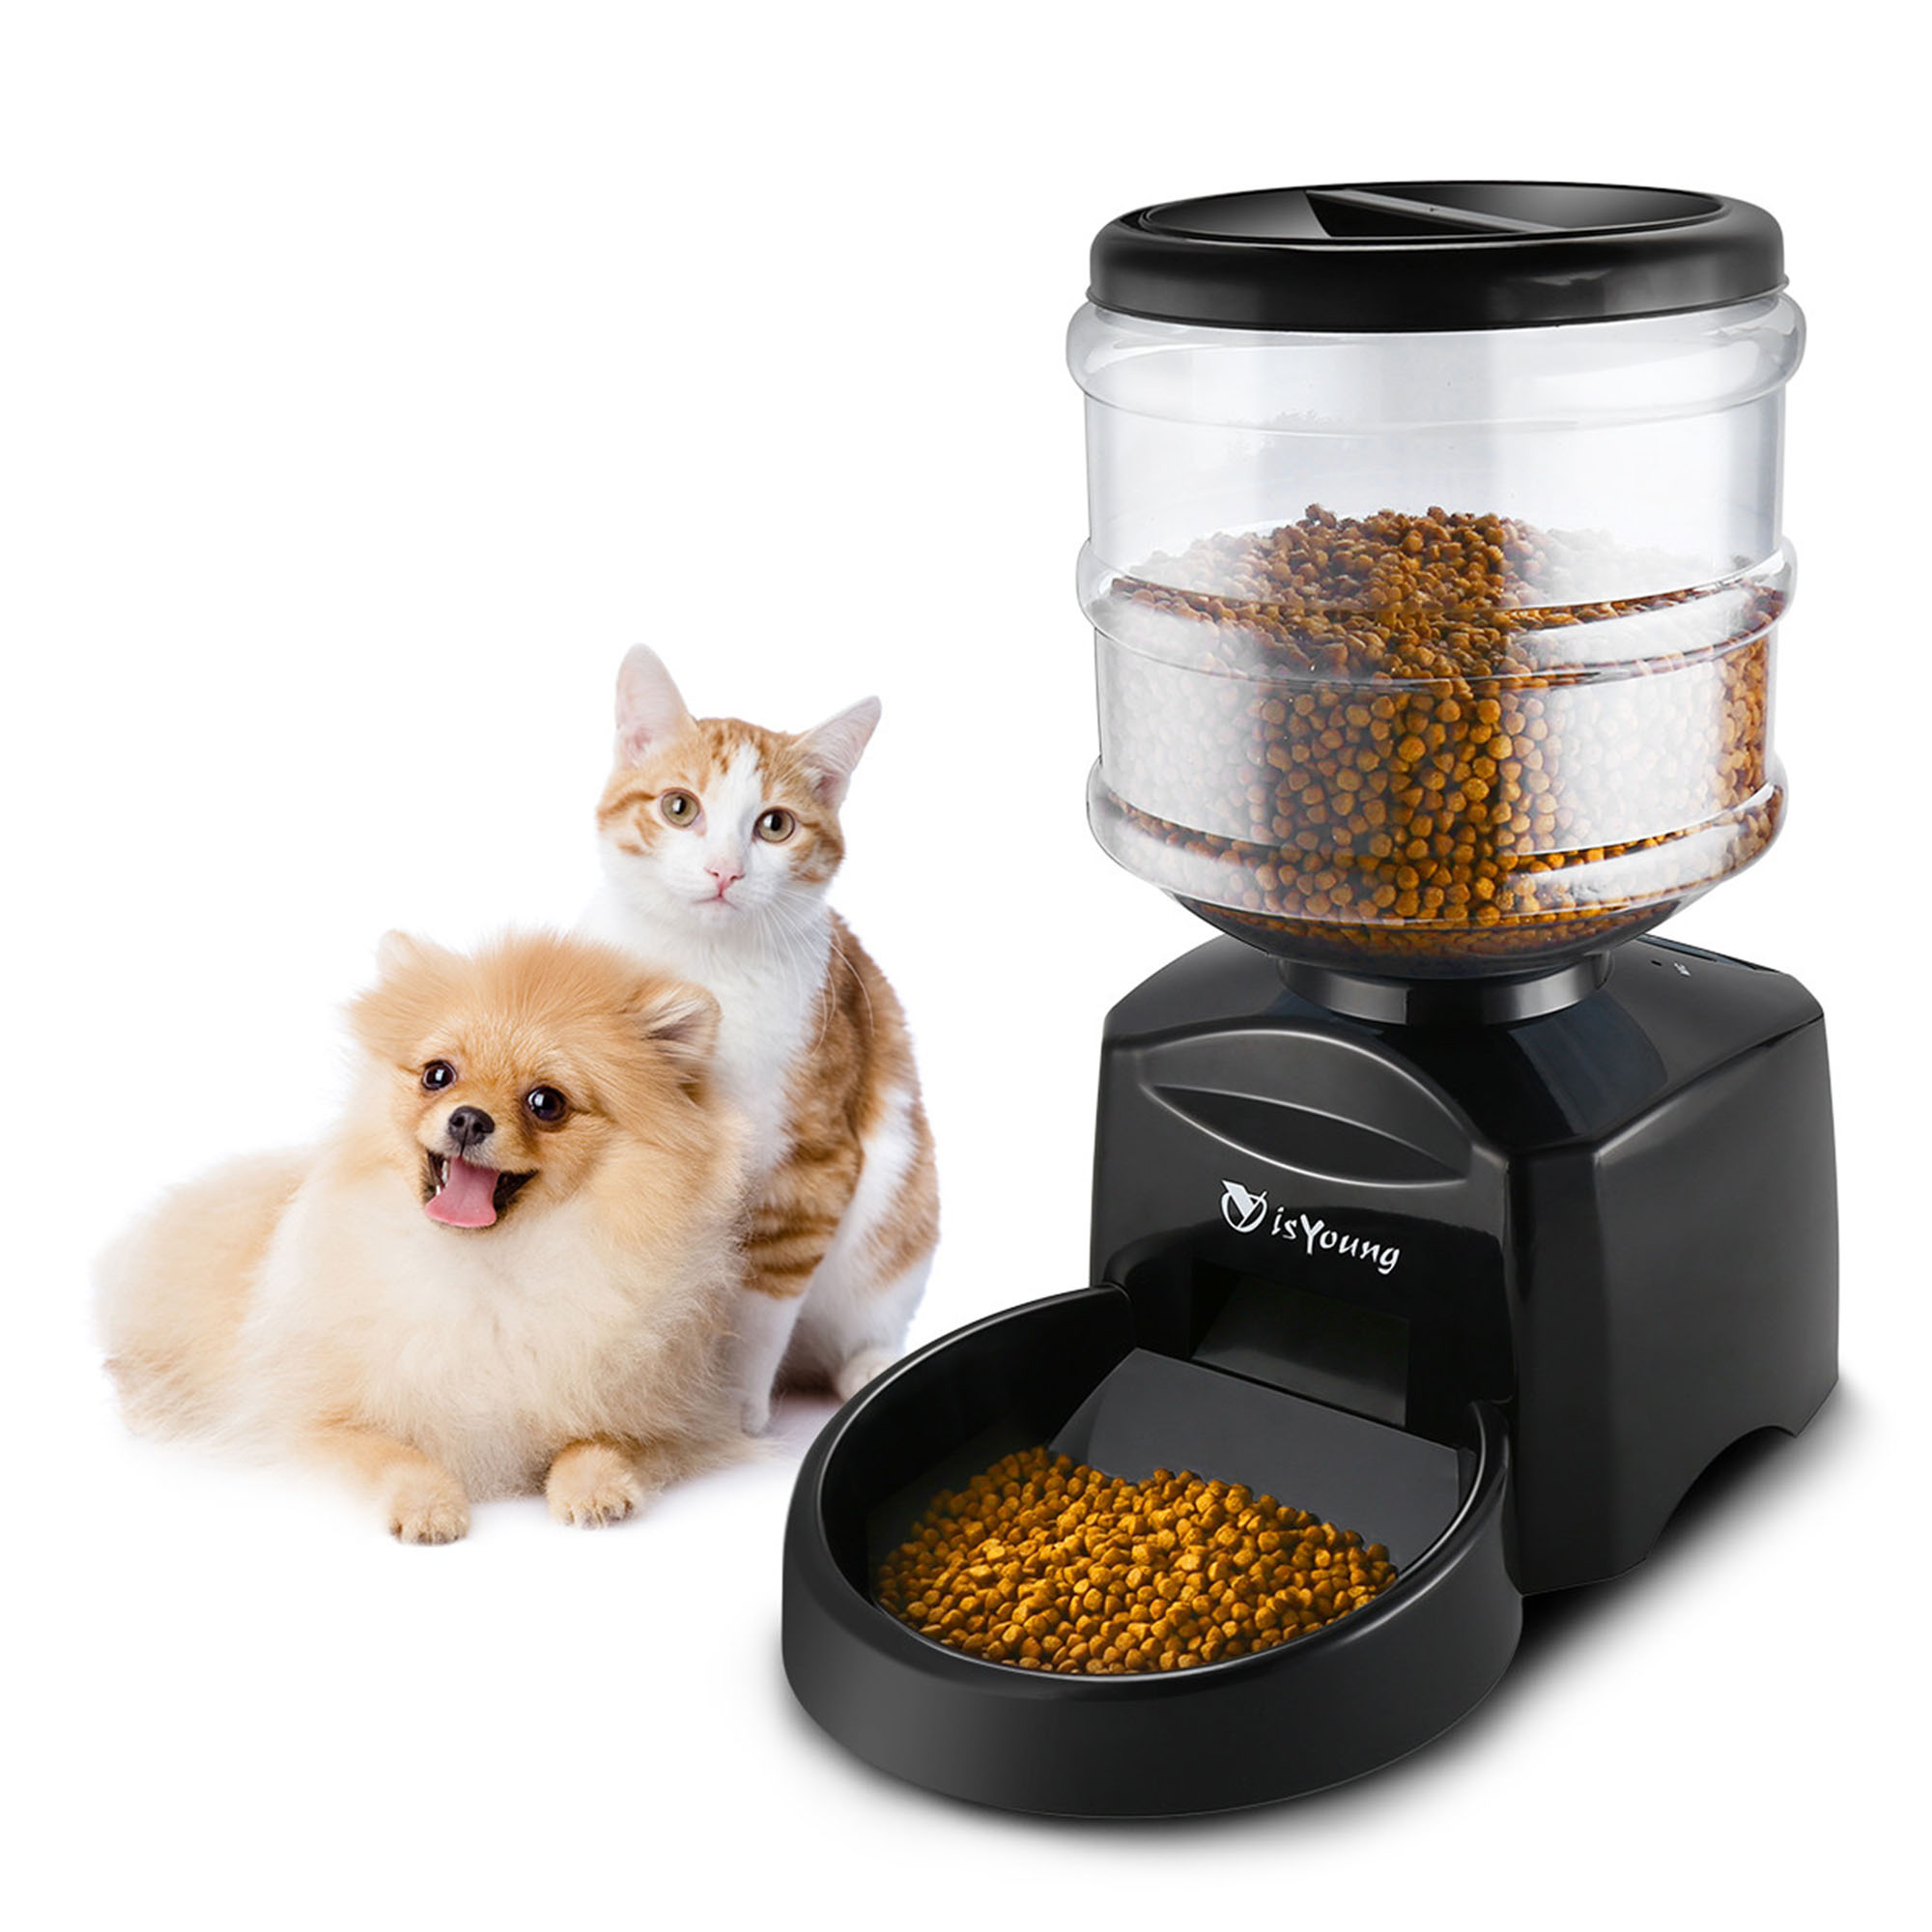 isYoung 5.5L Pet Feeder Automatic Dog Feeder Electronic Control Feeder with Big LCD Screen and Voice Record Cat Feeder For Cats and Dogs